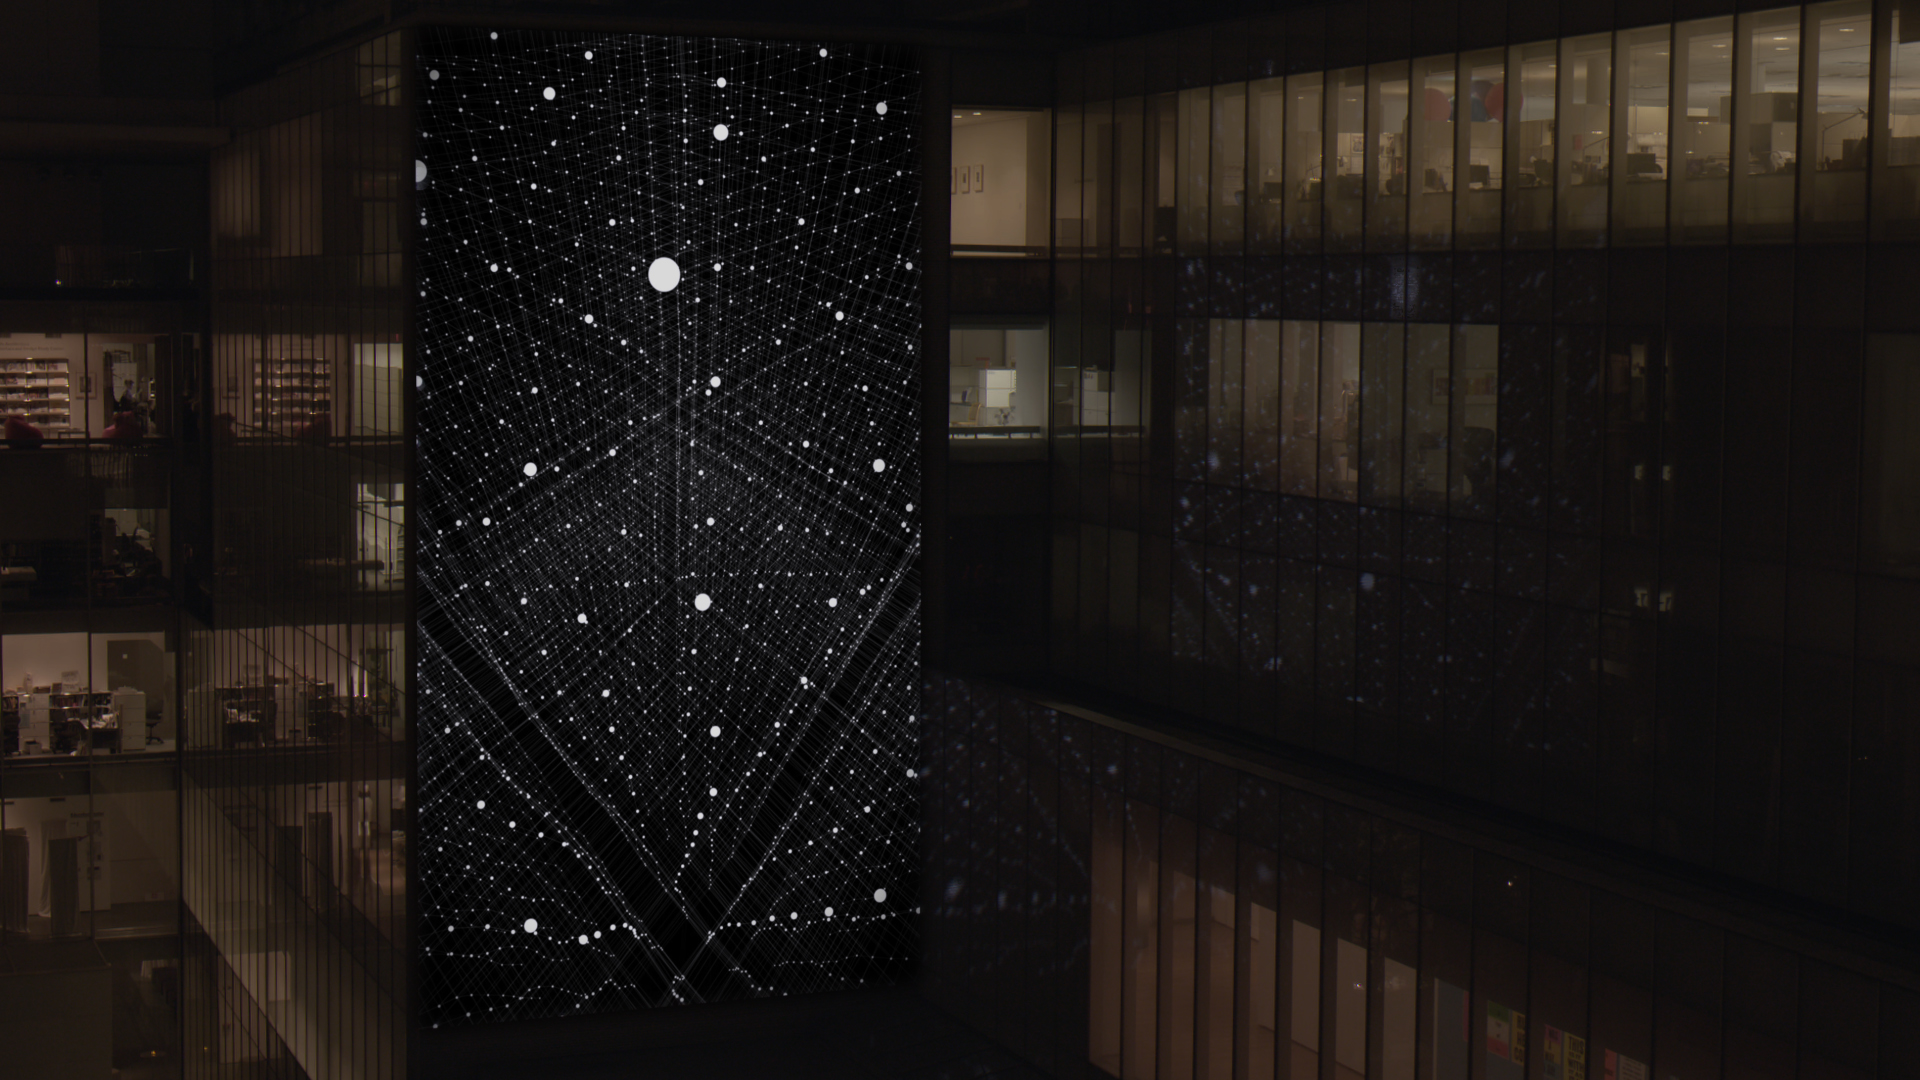 MoMA_Wall_Projection_23.jpg